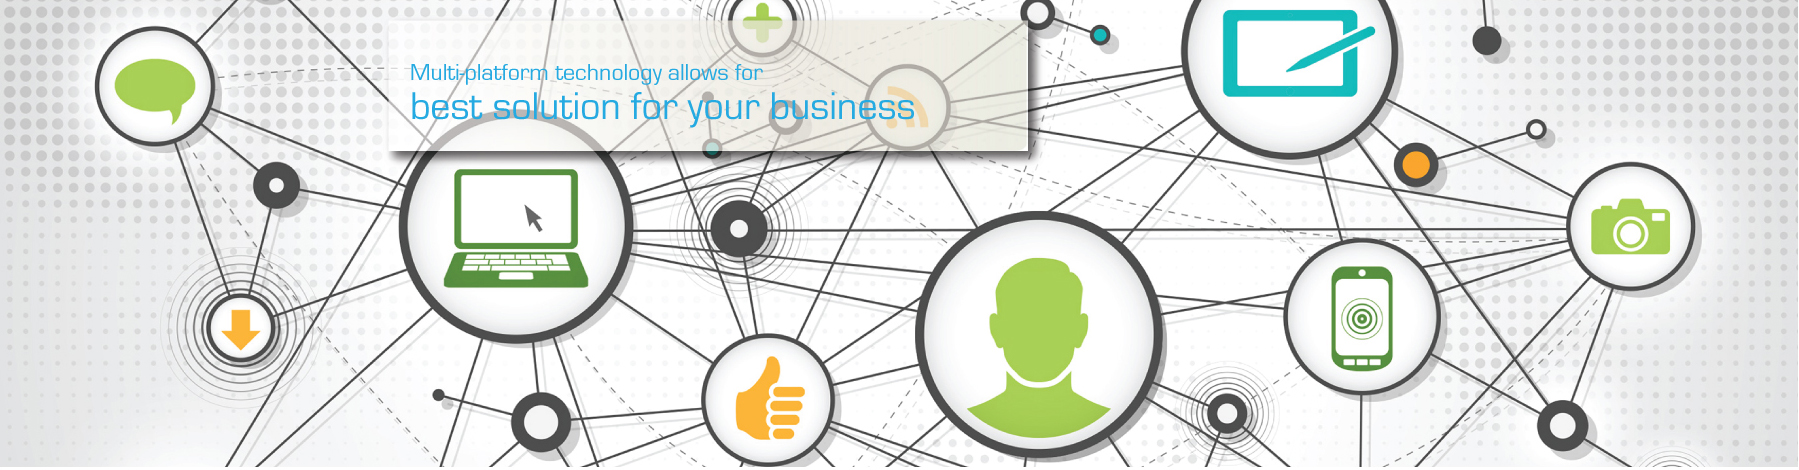 CCB Credit Services multi-platform technology provides the best solution for a variety of businesses.